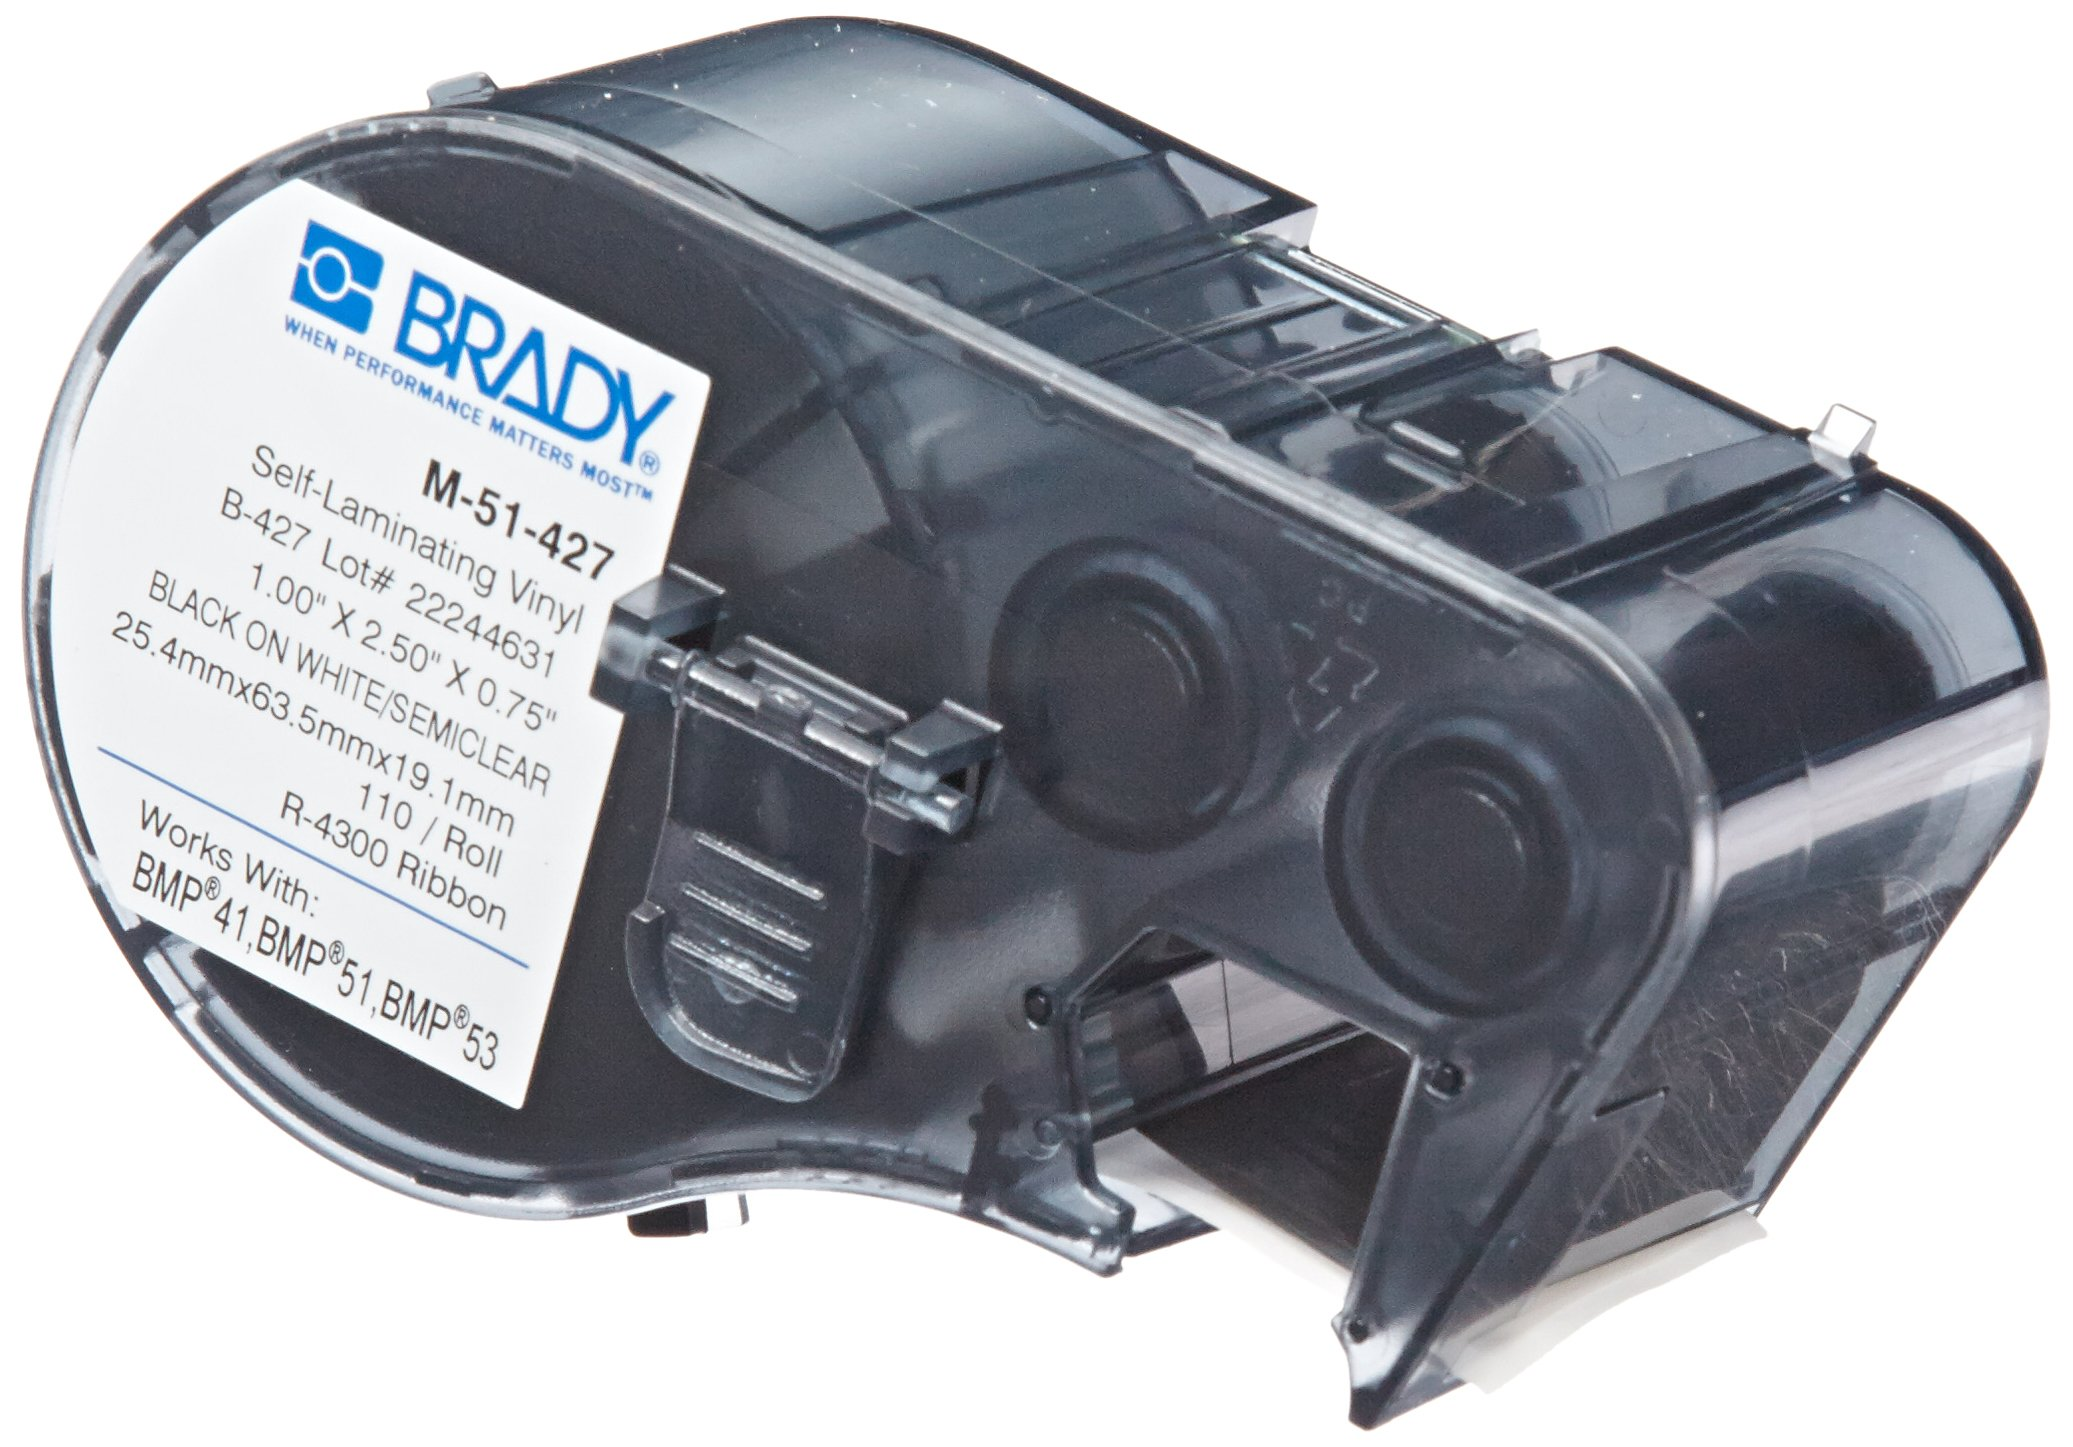 Brady Self-Laminating Vinyl Label Tape (M-51-427) - Black on White, Semi Clear Tape - Compatible with BMP41, BMP51, BMP53 Label Printers - 2.5'' Height.75'' Width